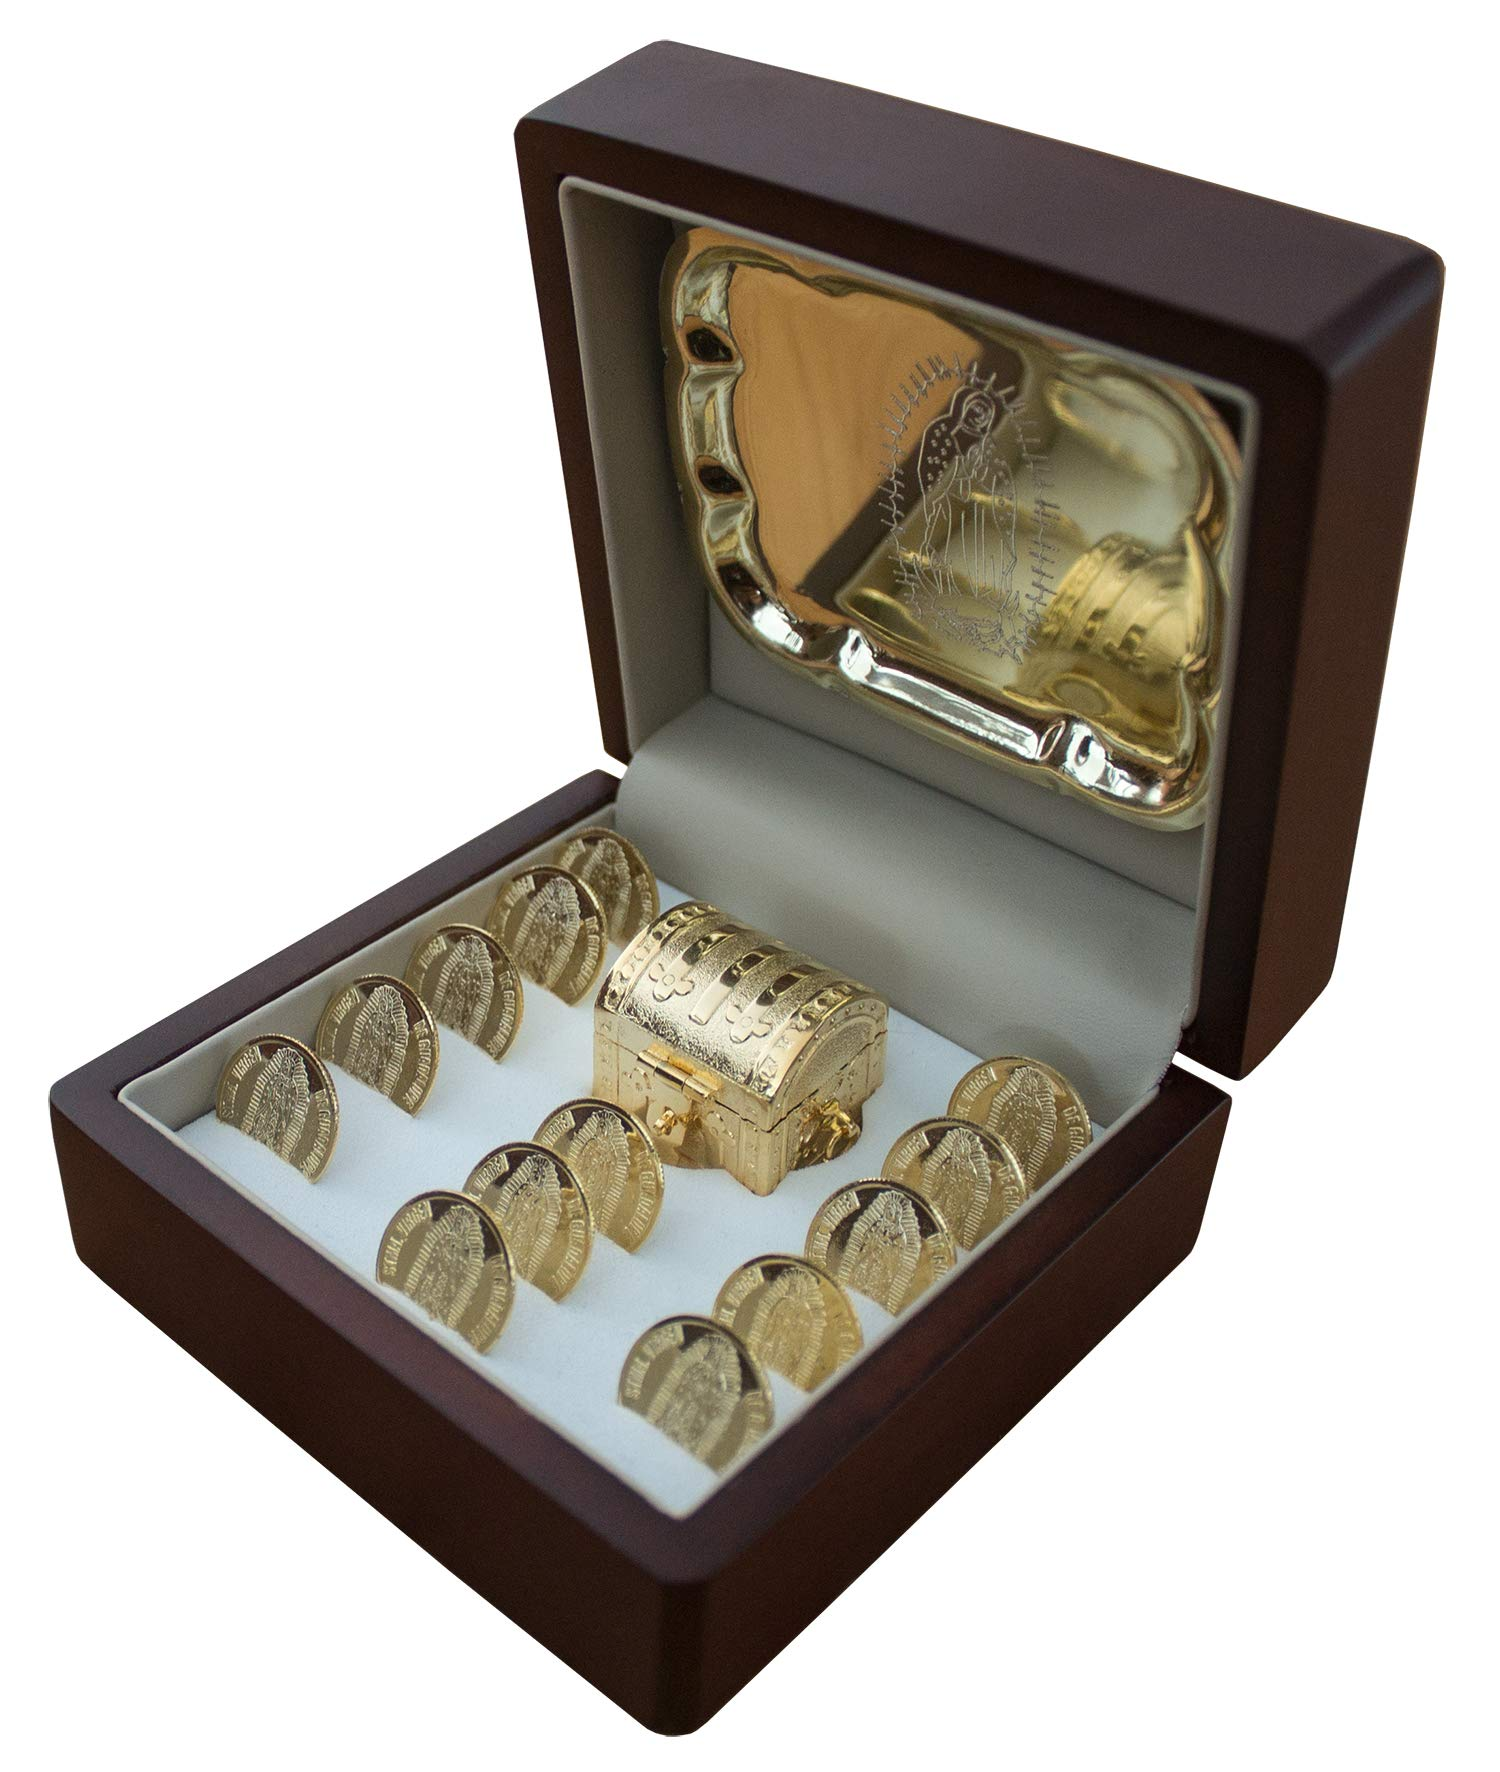 Premium Arras de Boda catholic wedding coins with La Virgen on Wooden Box ultra unity coins or arras de matrimonio golden with our lady of guadalupe and golden tray and miniature chestbox